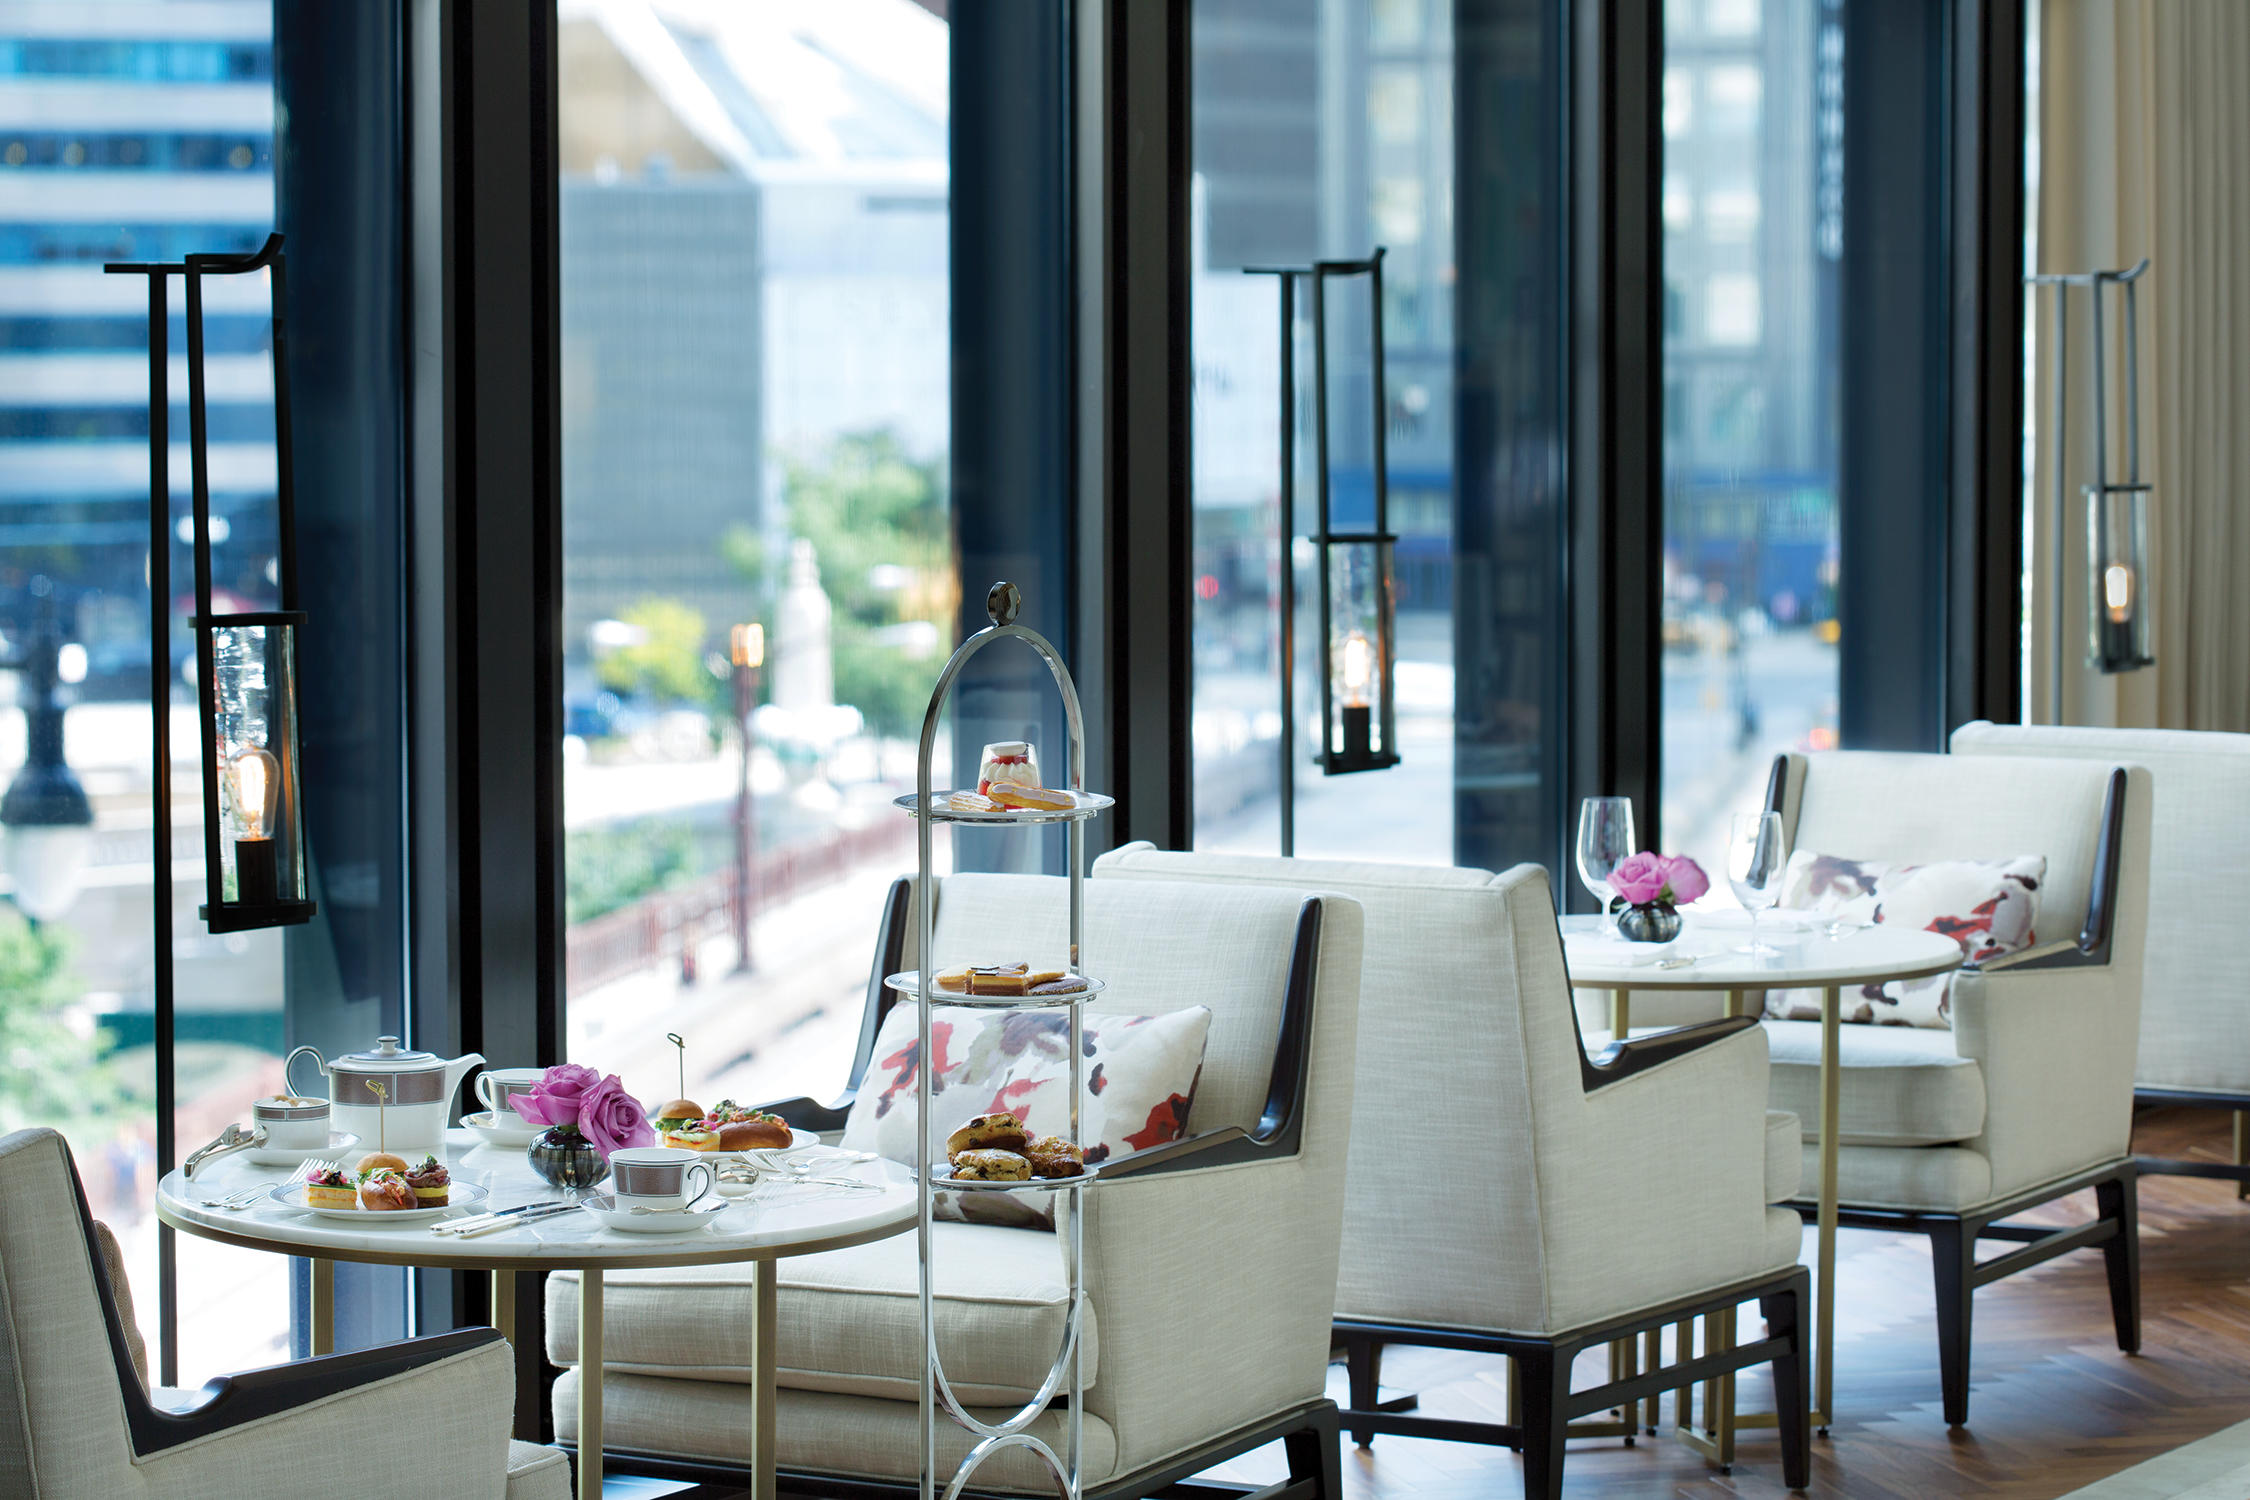 Pavilion at The Langham, Chicago -  Dining Room with view of the Chicago River